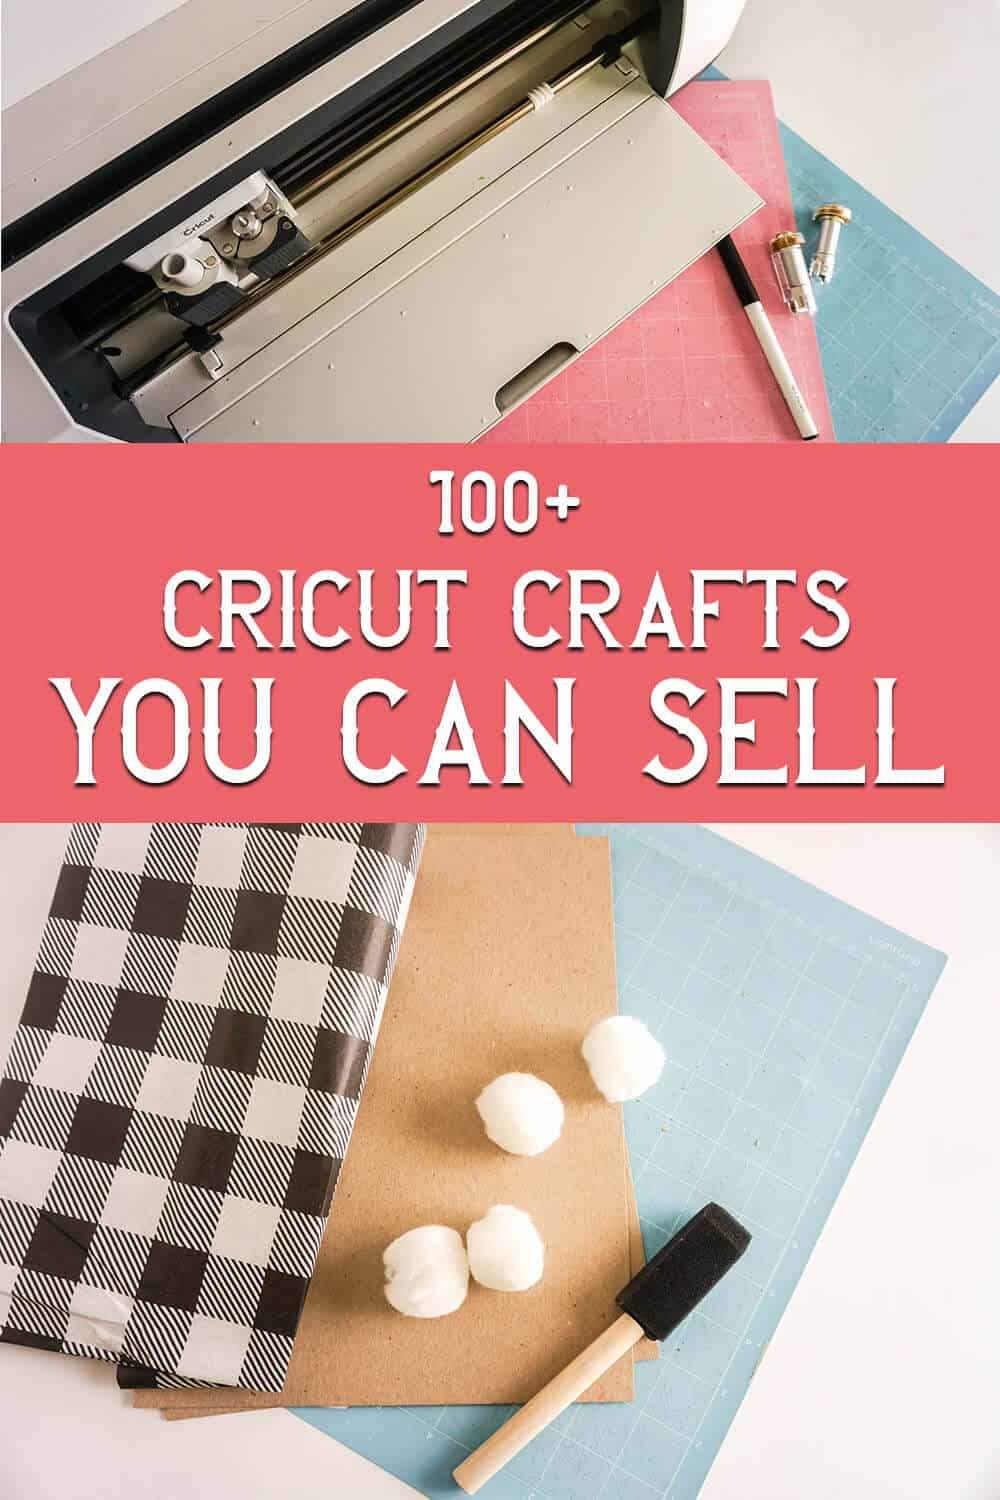 photo collage of cricut supplies and tools with text which reads 100+ cricut crafts you can sell